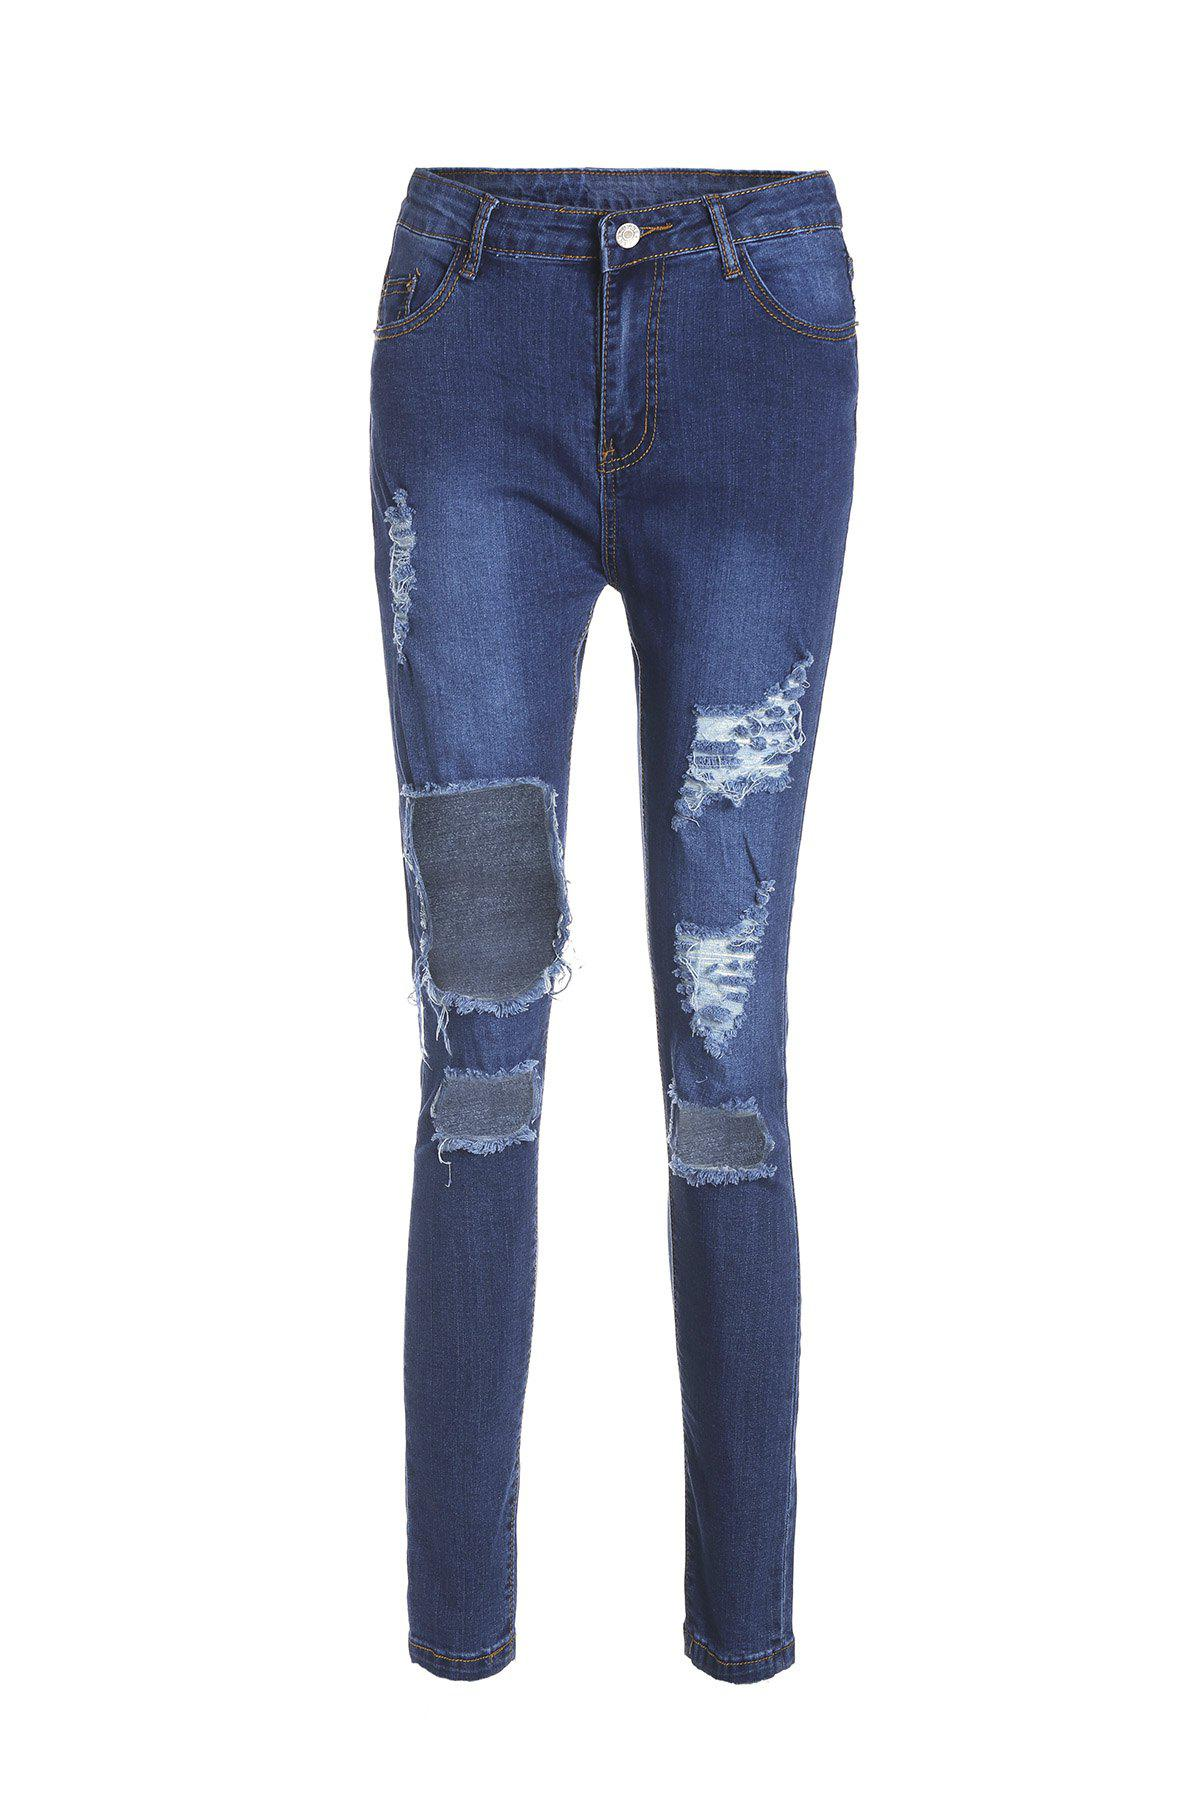 Chic High-Waisted Bodycon Hole Design Women's Jeans - BLUE M